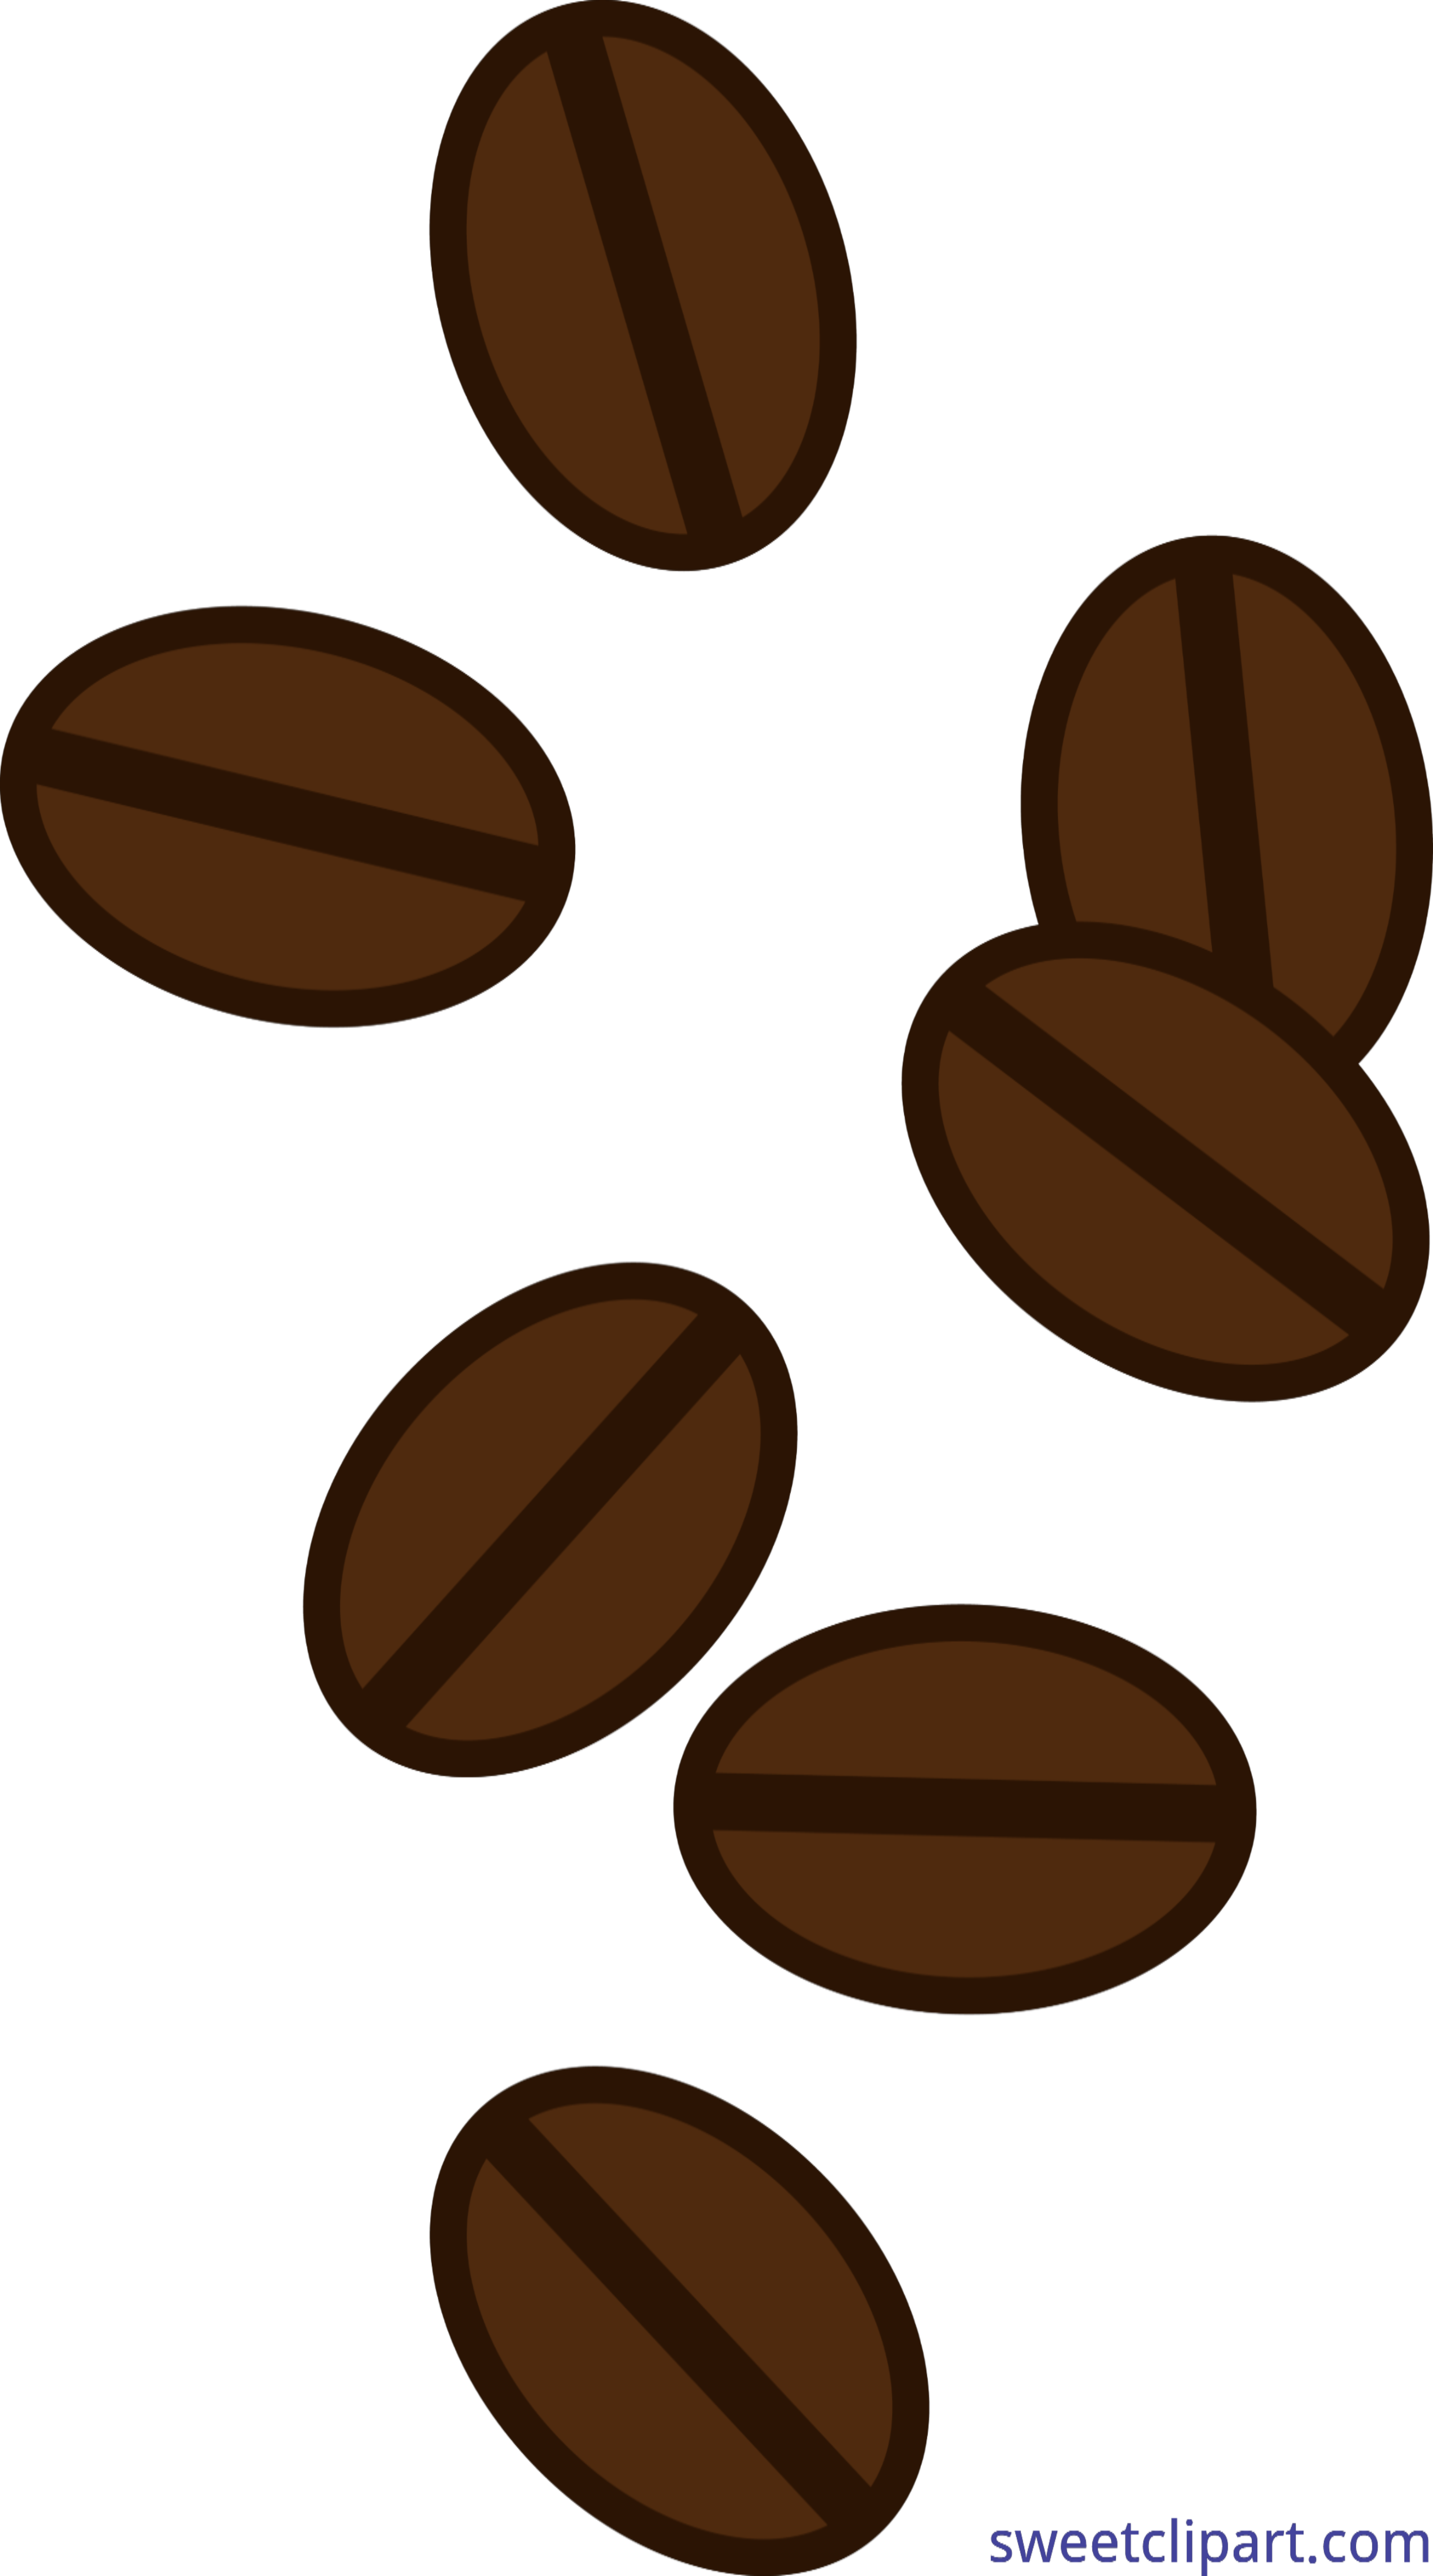 Beans clip art sweet. Clipart coffee chocolate